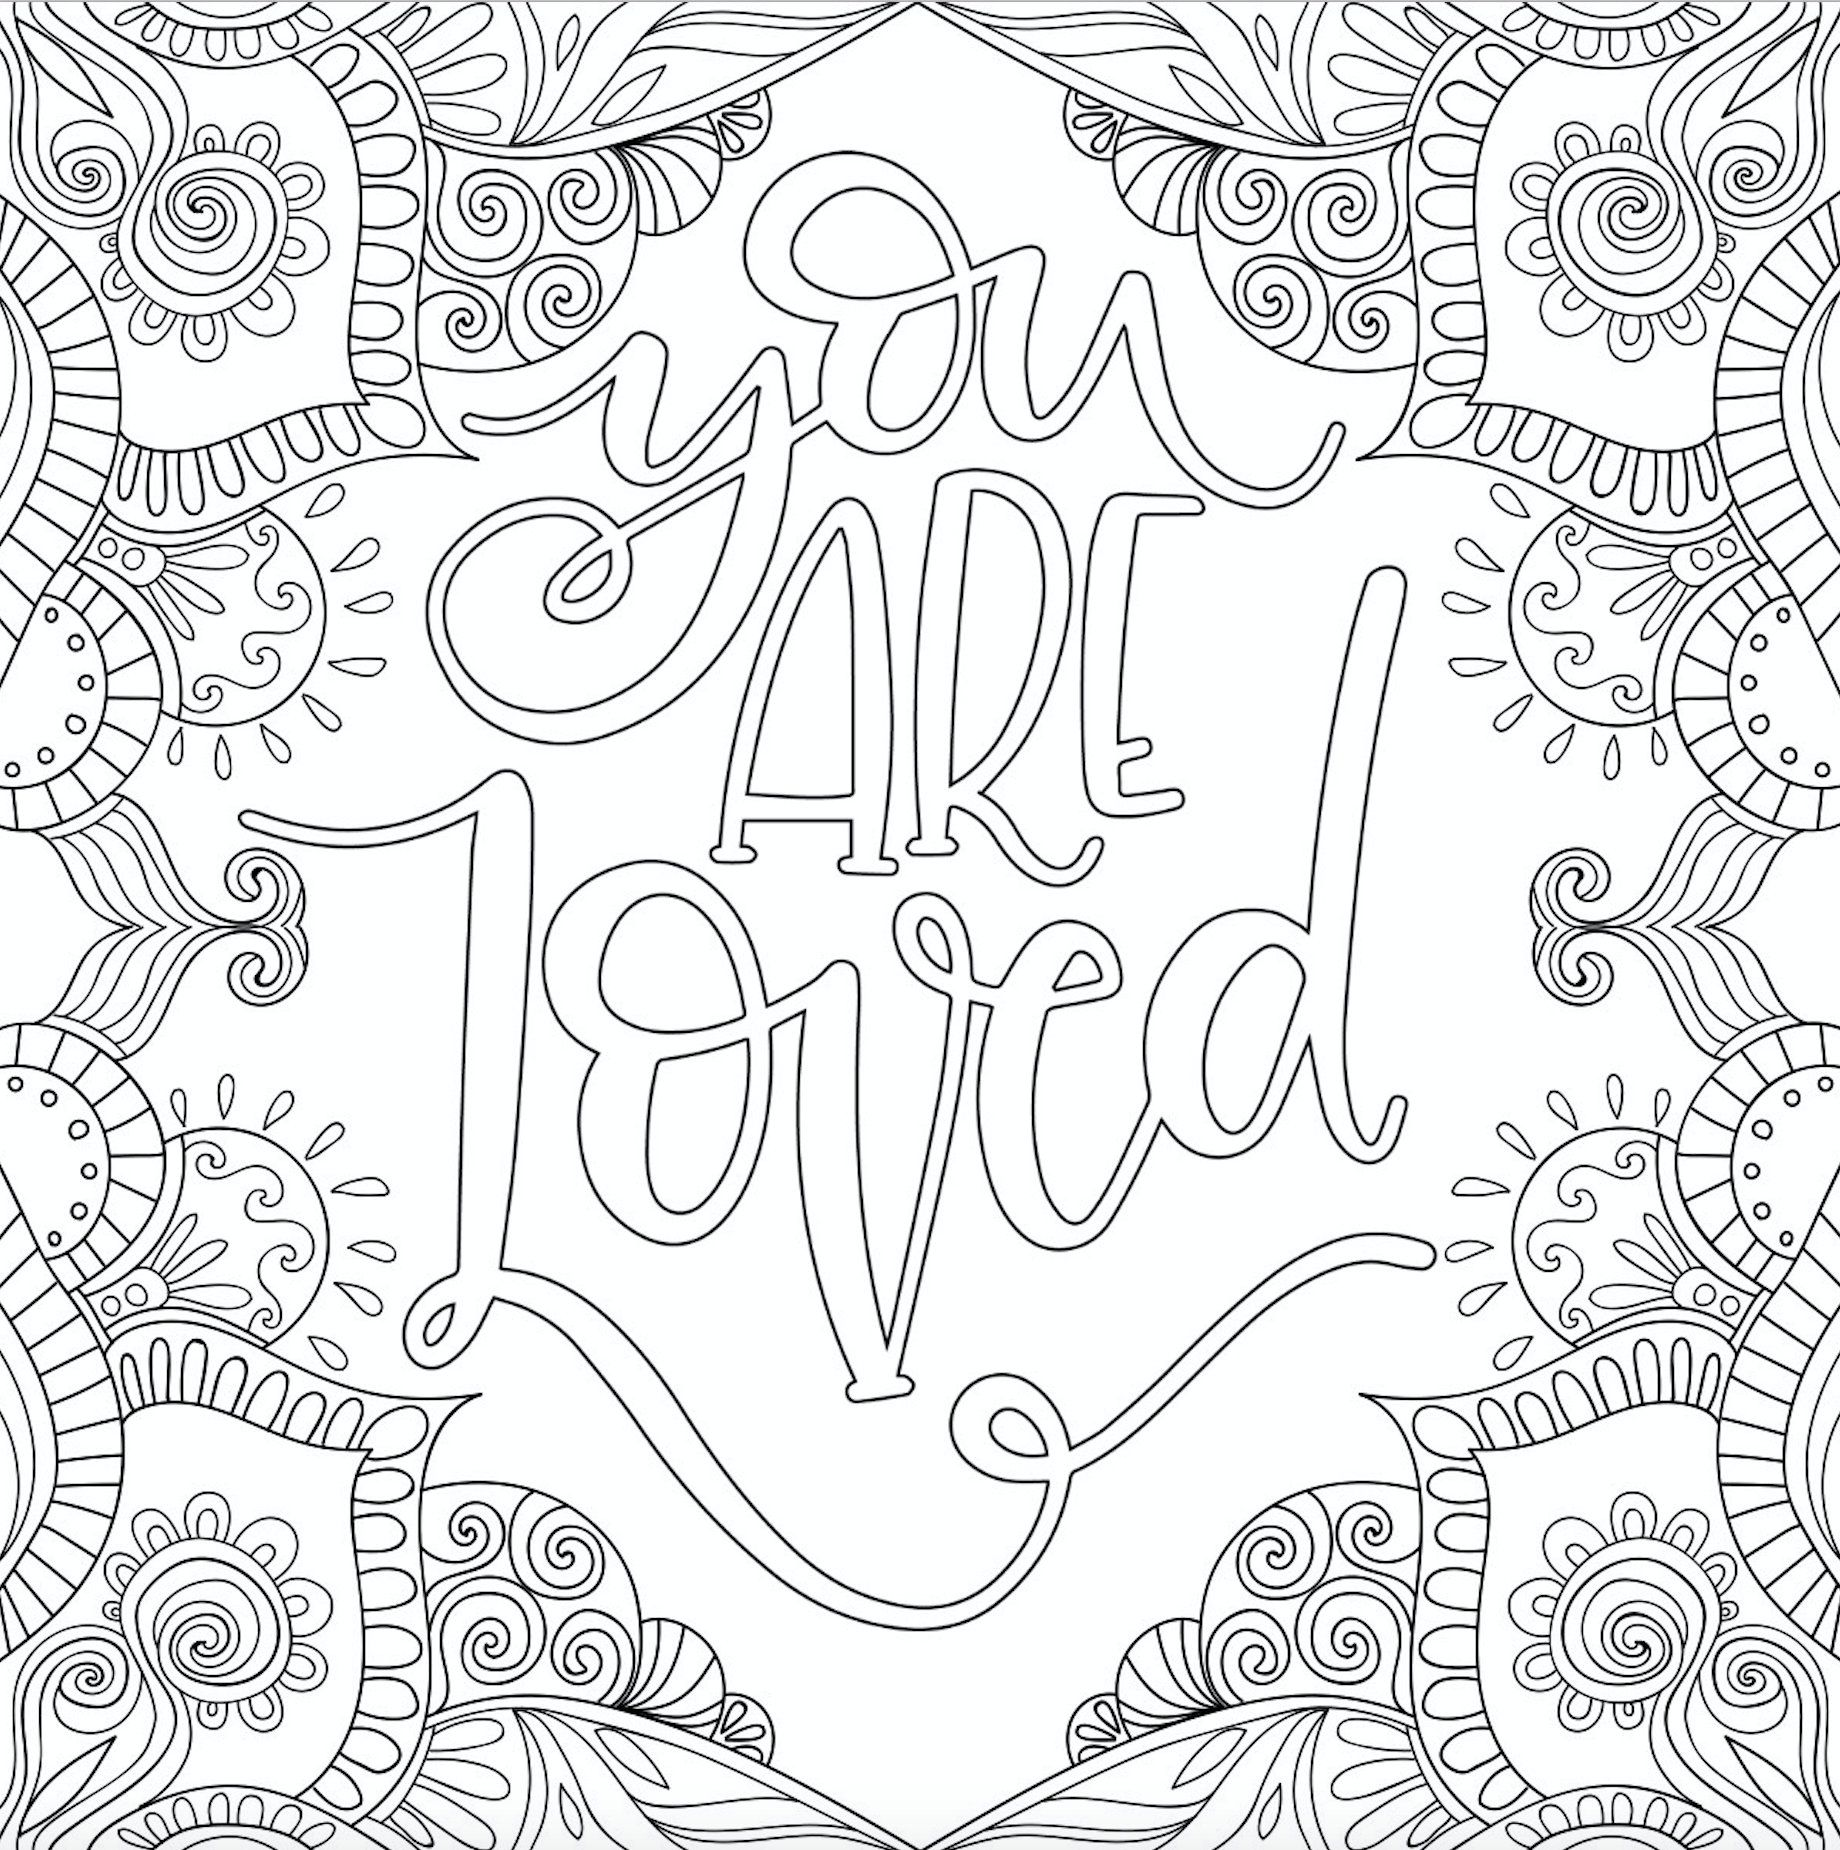 22 Motivational Printable Coloring Pages Zentangle Coloring  Etsy